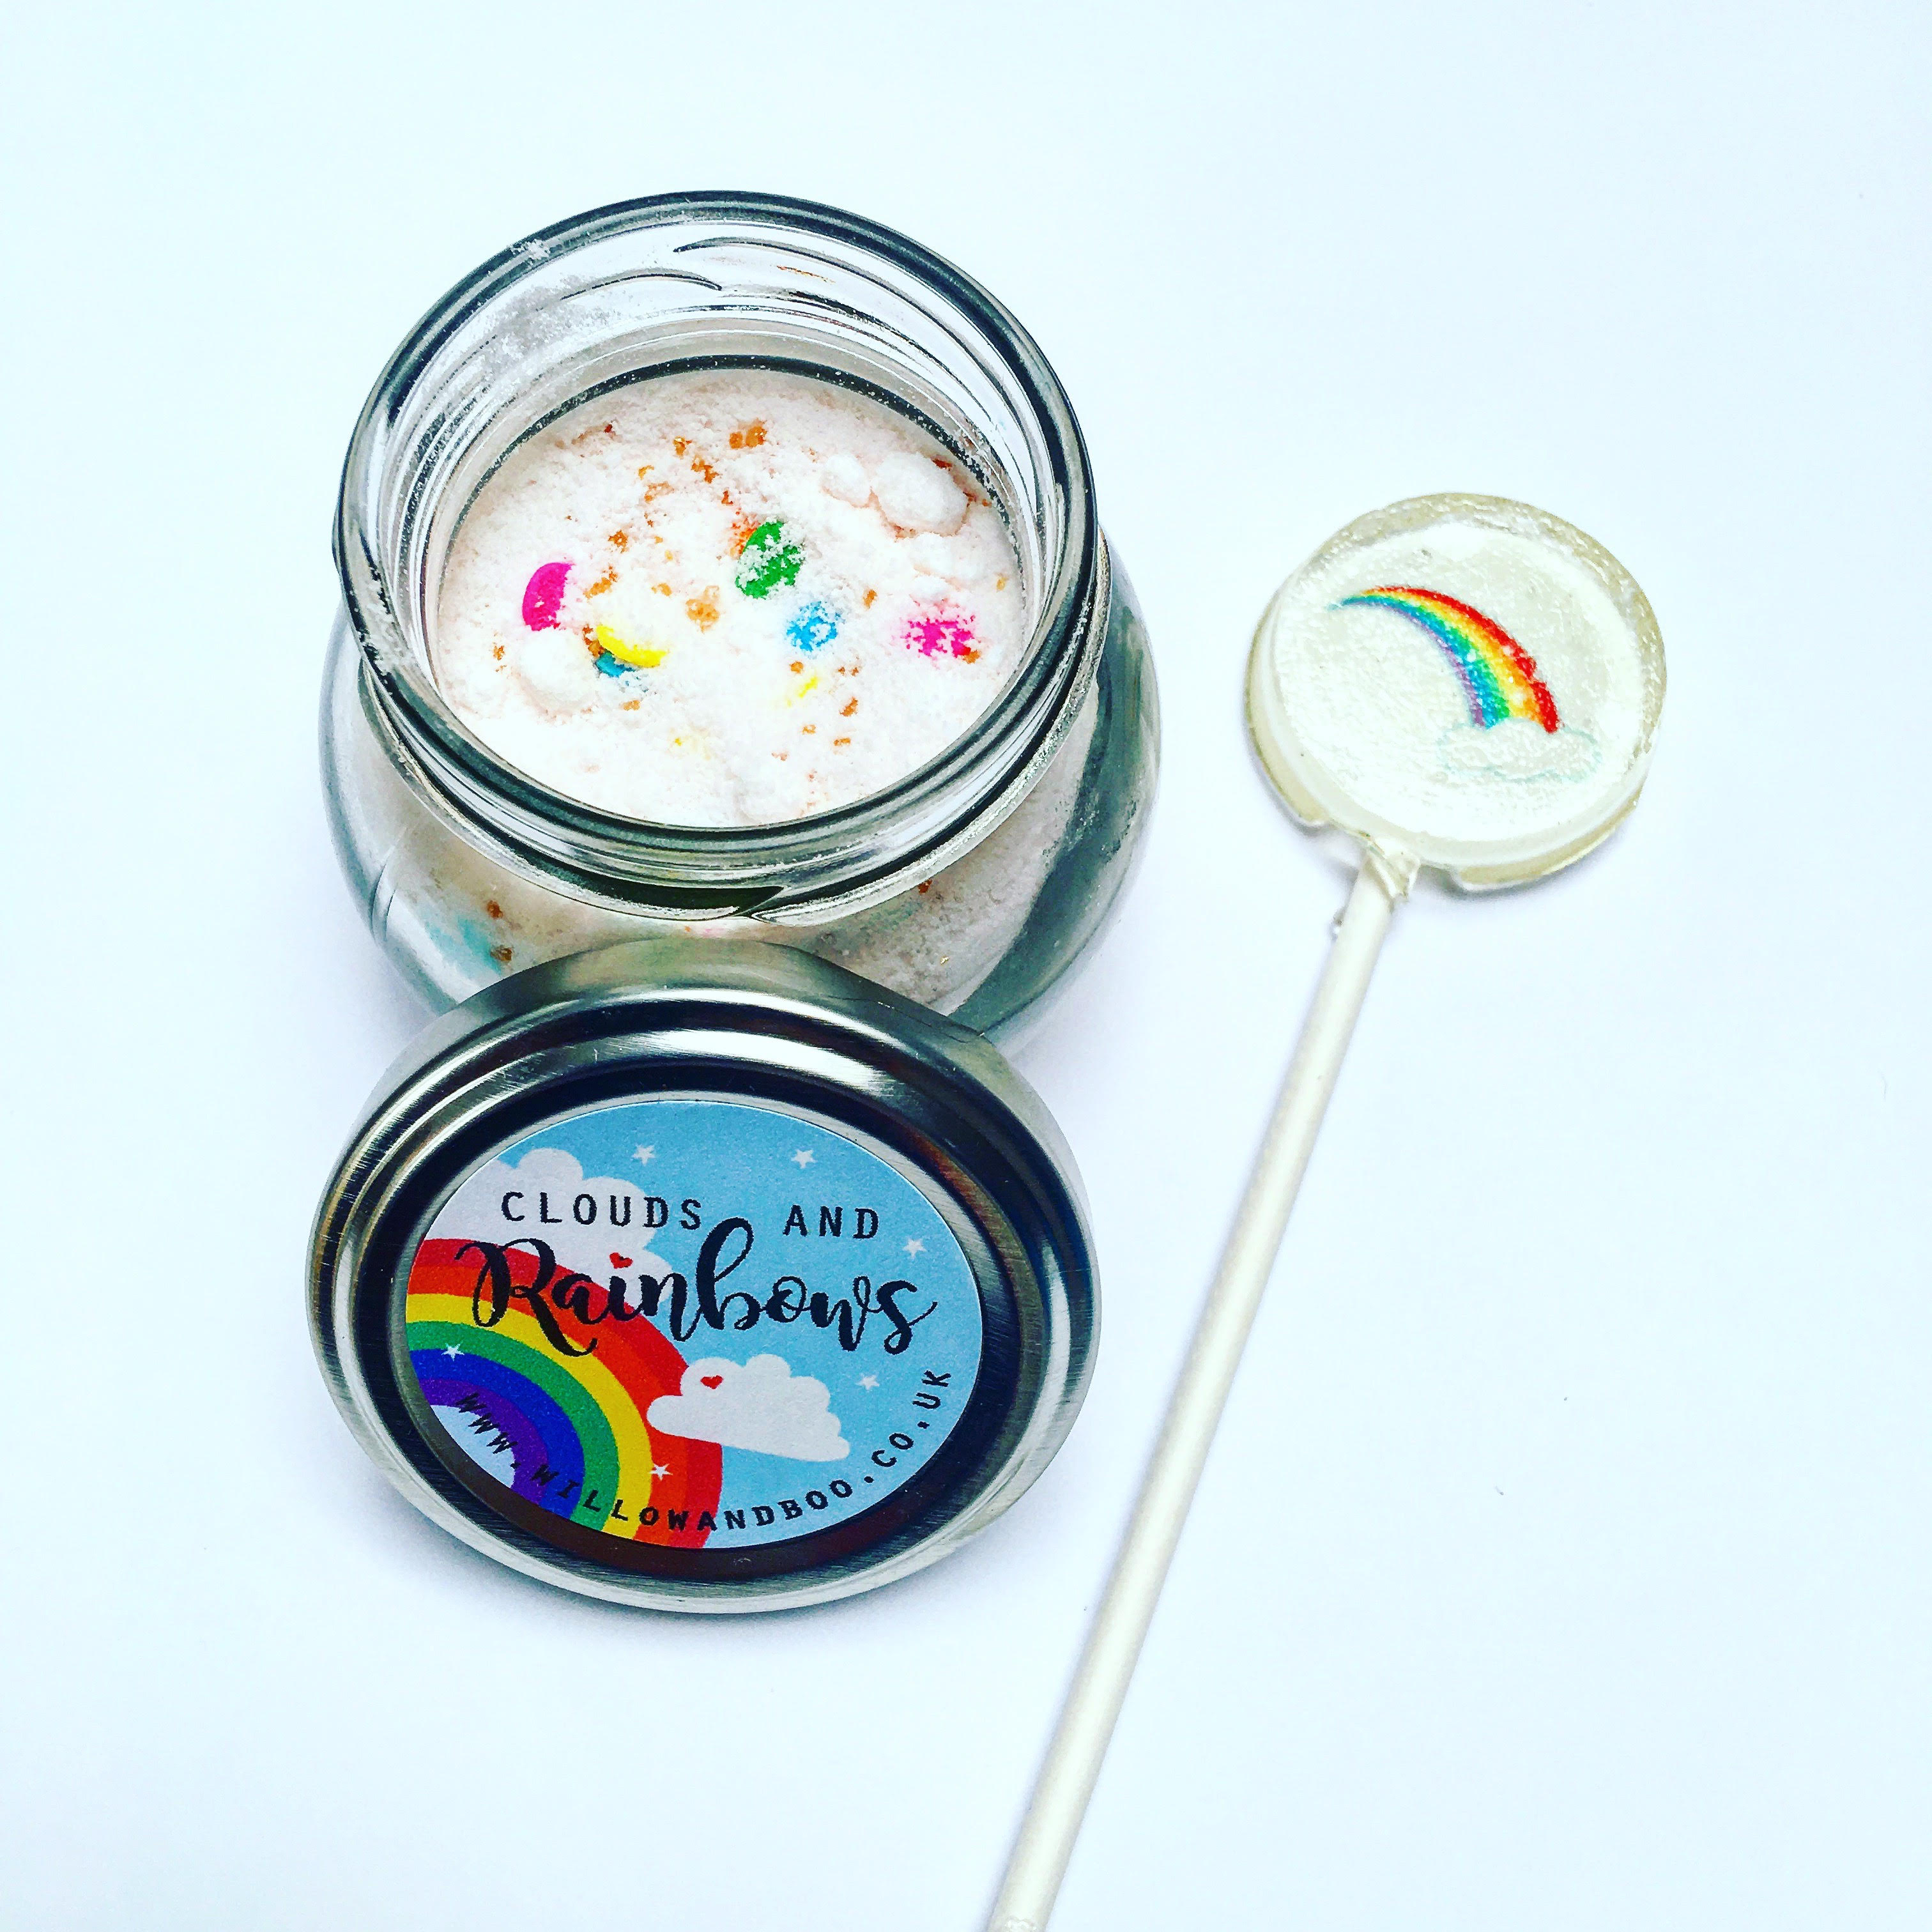 Party bag ideas. Handmade rainbow lollipops and sherbert pots